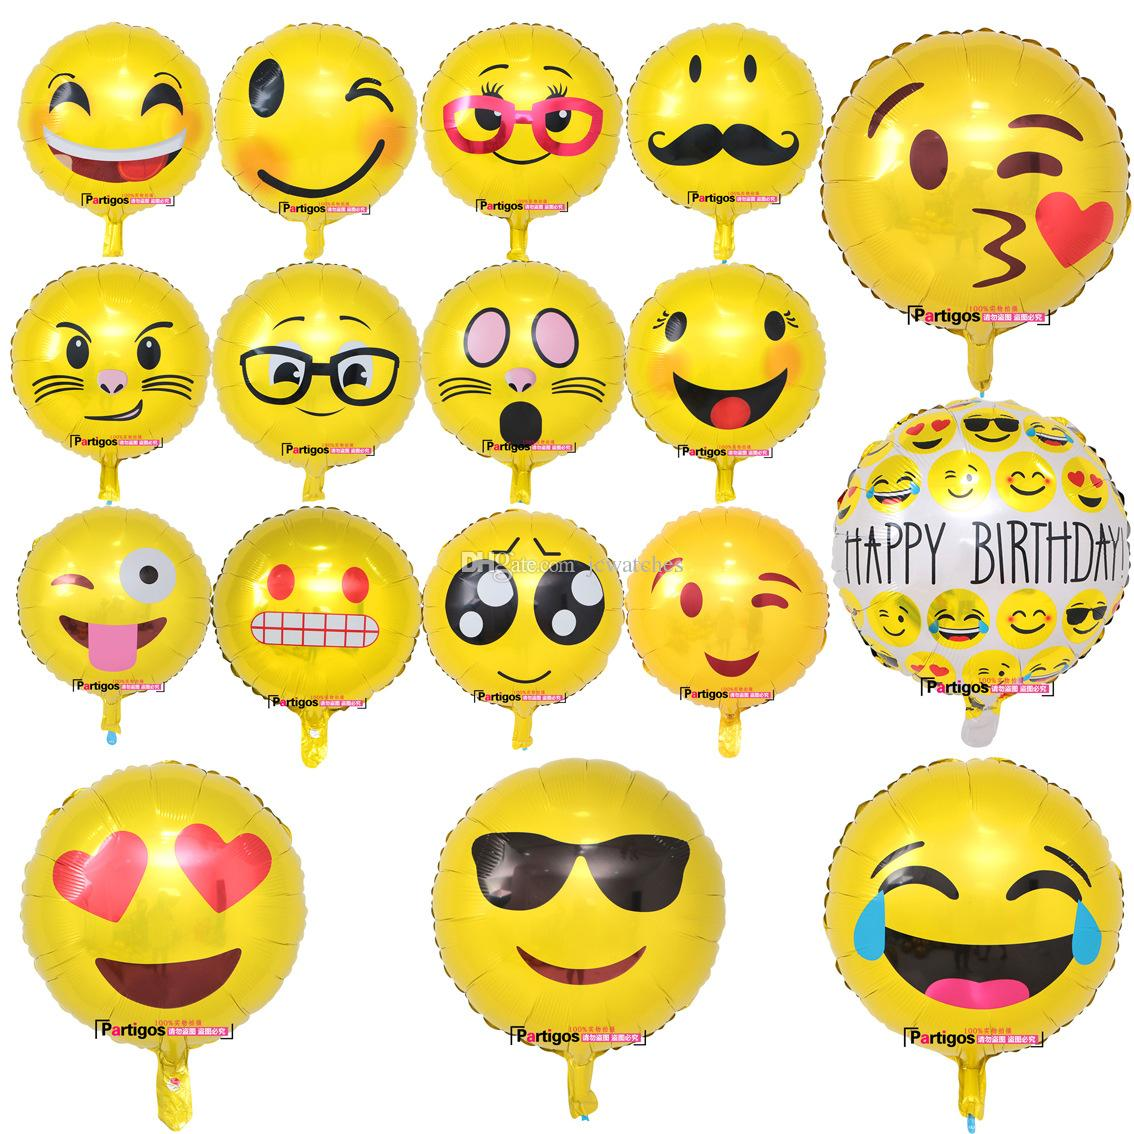 2019 18inch Emoji Balloon Helium Foil Balloons Party Decorations 13 Style Inflatable Balls Birthday Decor From Jcwatches 035